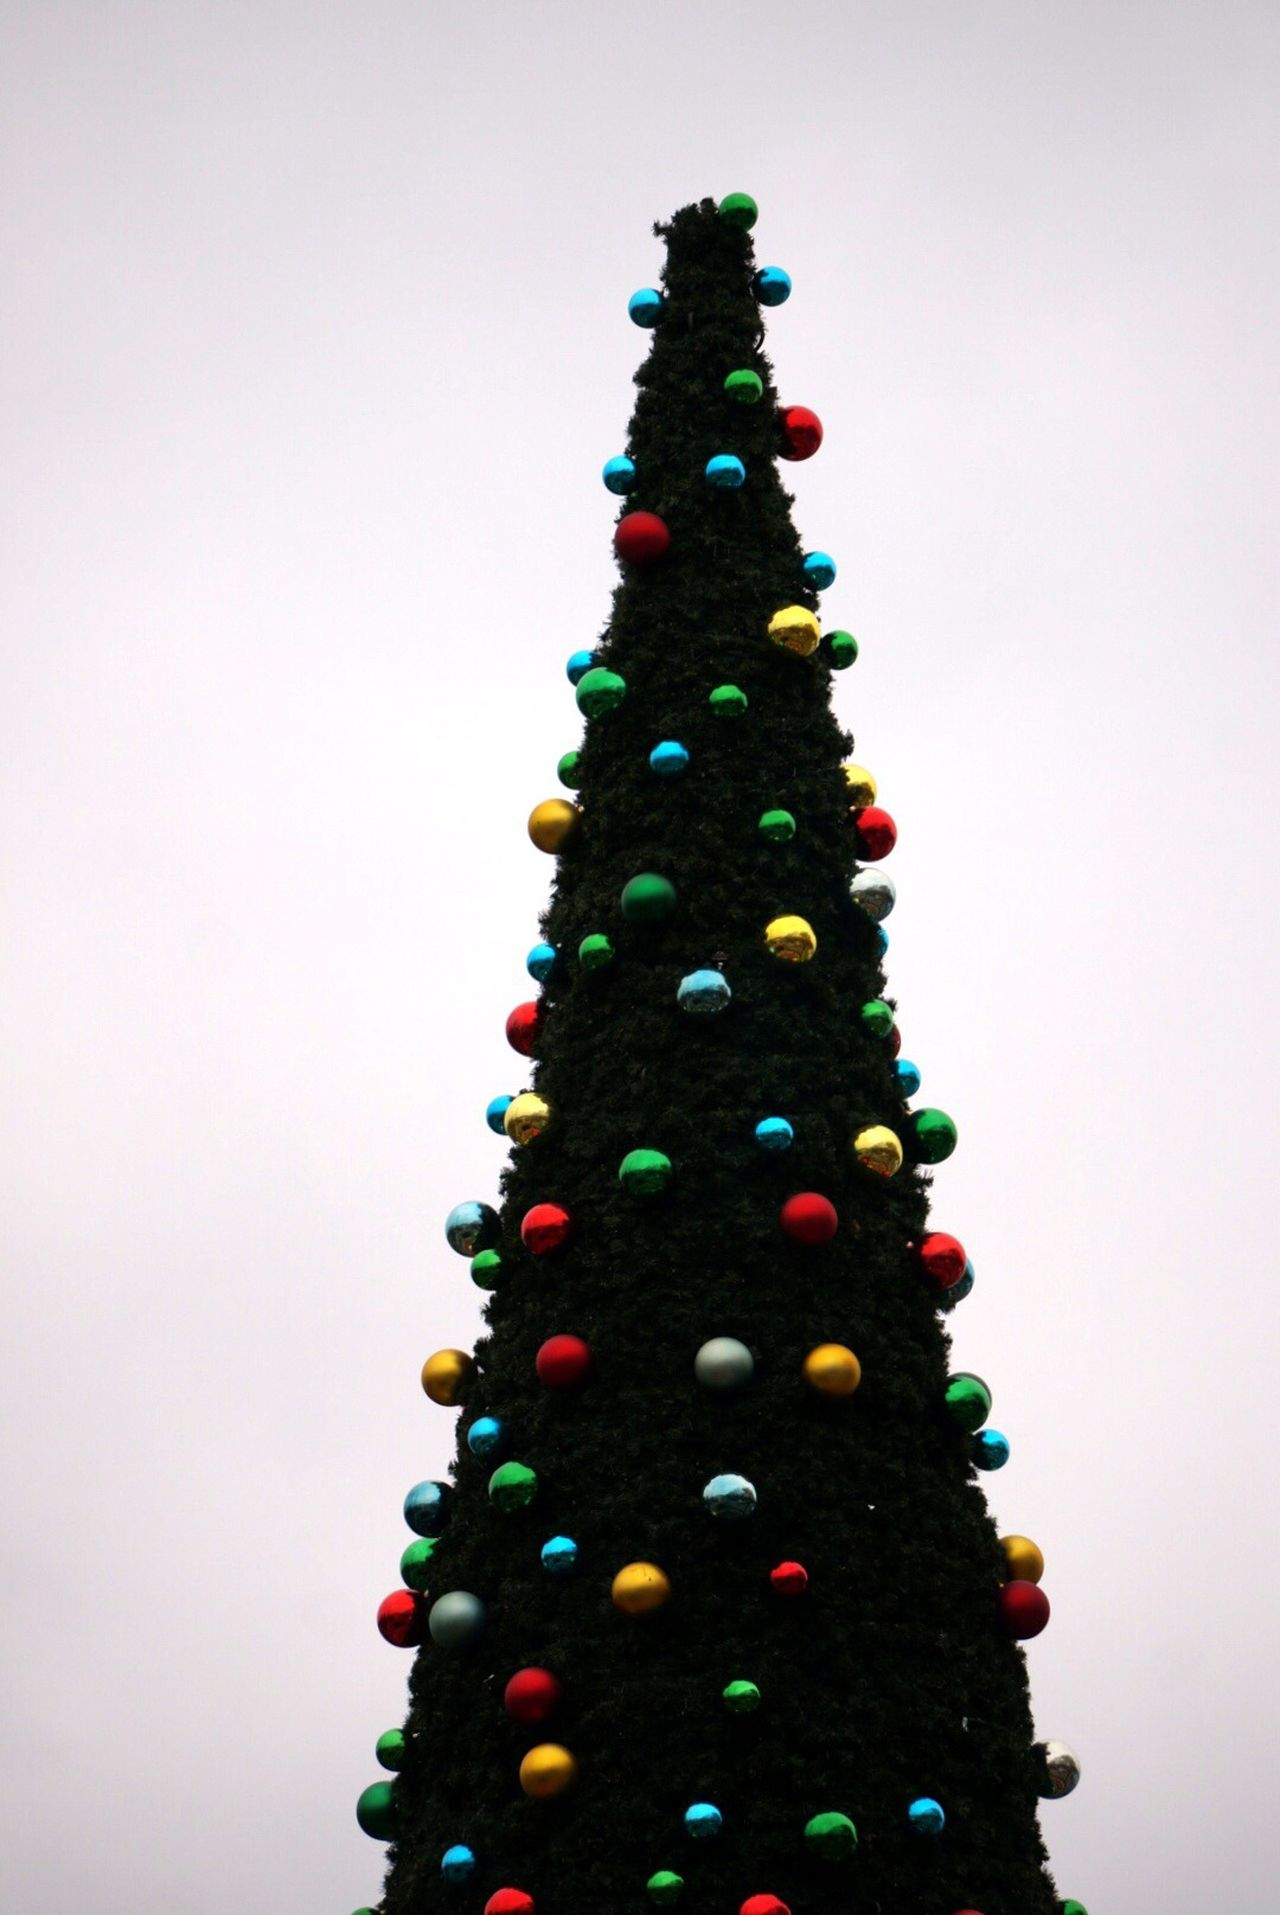 Christmas Tree Festive Season Christmas Christmastree Merry Christmas! Tivoli Trees TreePorn Hugging A Tree Christmas Decorations How You Celebrate Holidays Showcase: December